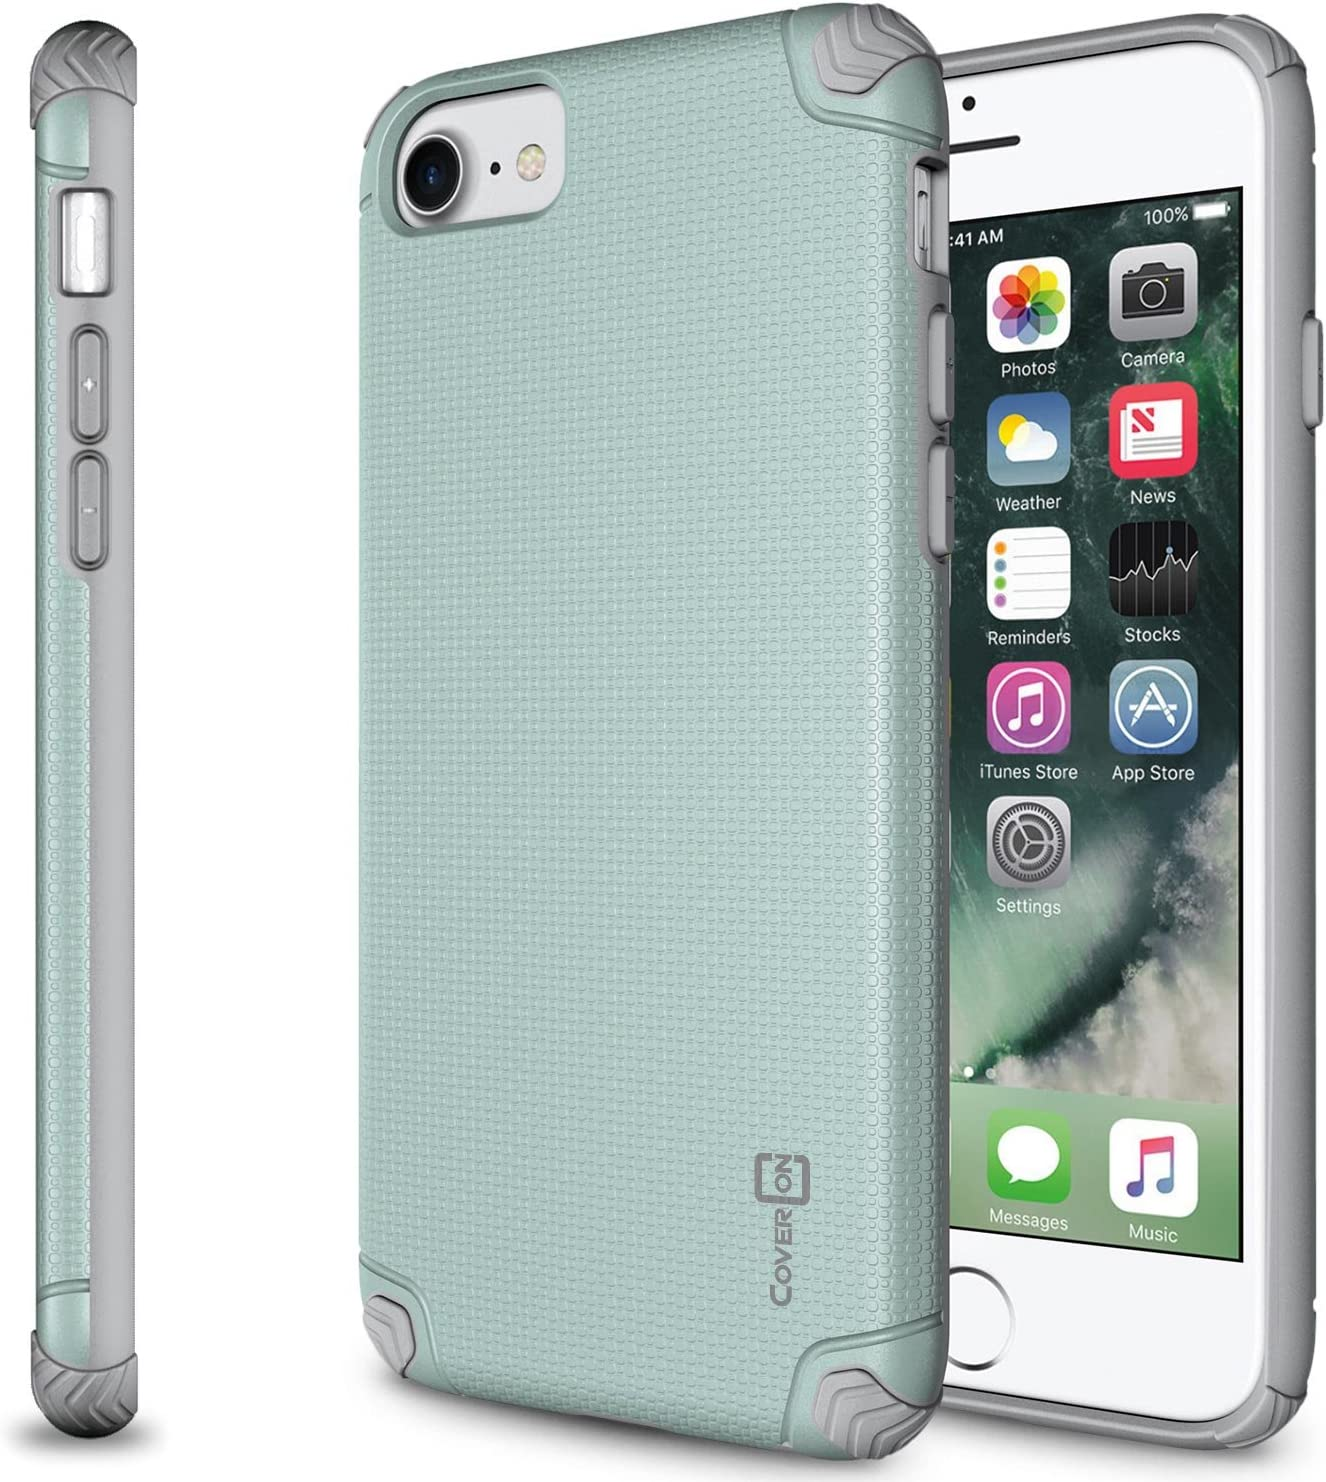 CoverON Slim Grip Designed for Apple iPhone SE Case (2020) / iPhone 8 Case, Dual Layer Hybrid Phone Cover - Powder Blue